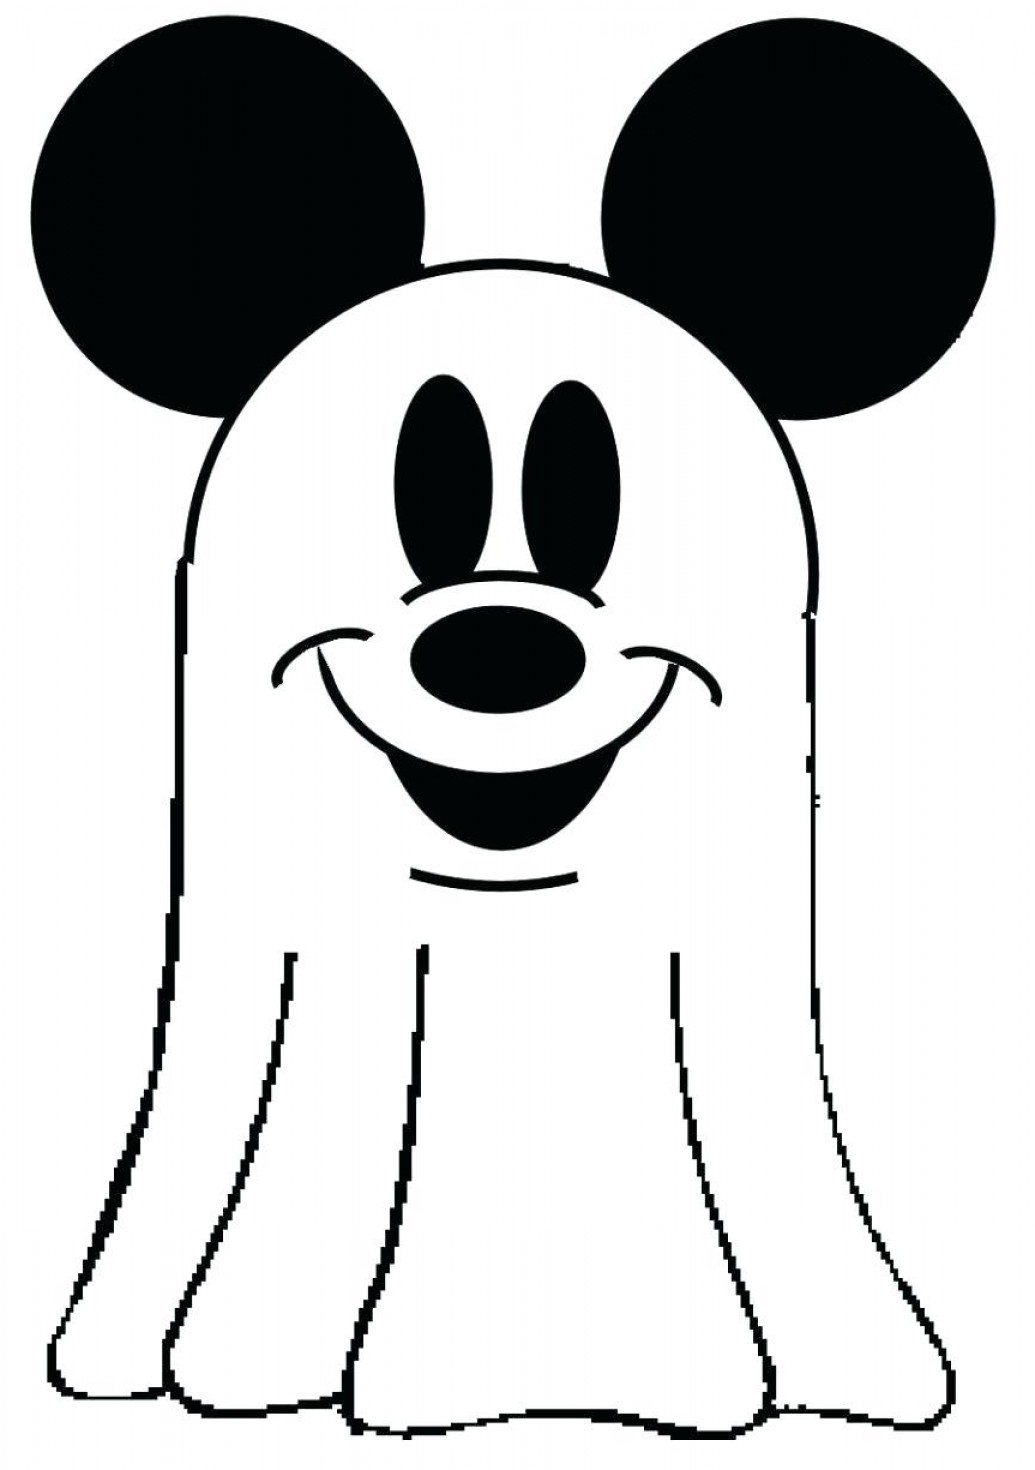 Mickey Mouse Ears Printable Coloring Pages Ghost Free Outline Large ...